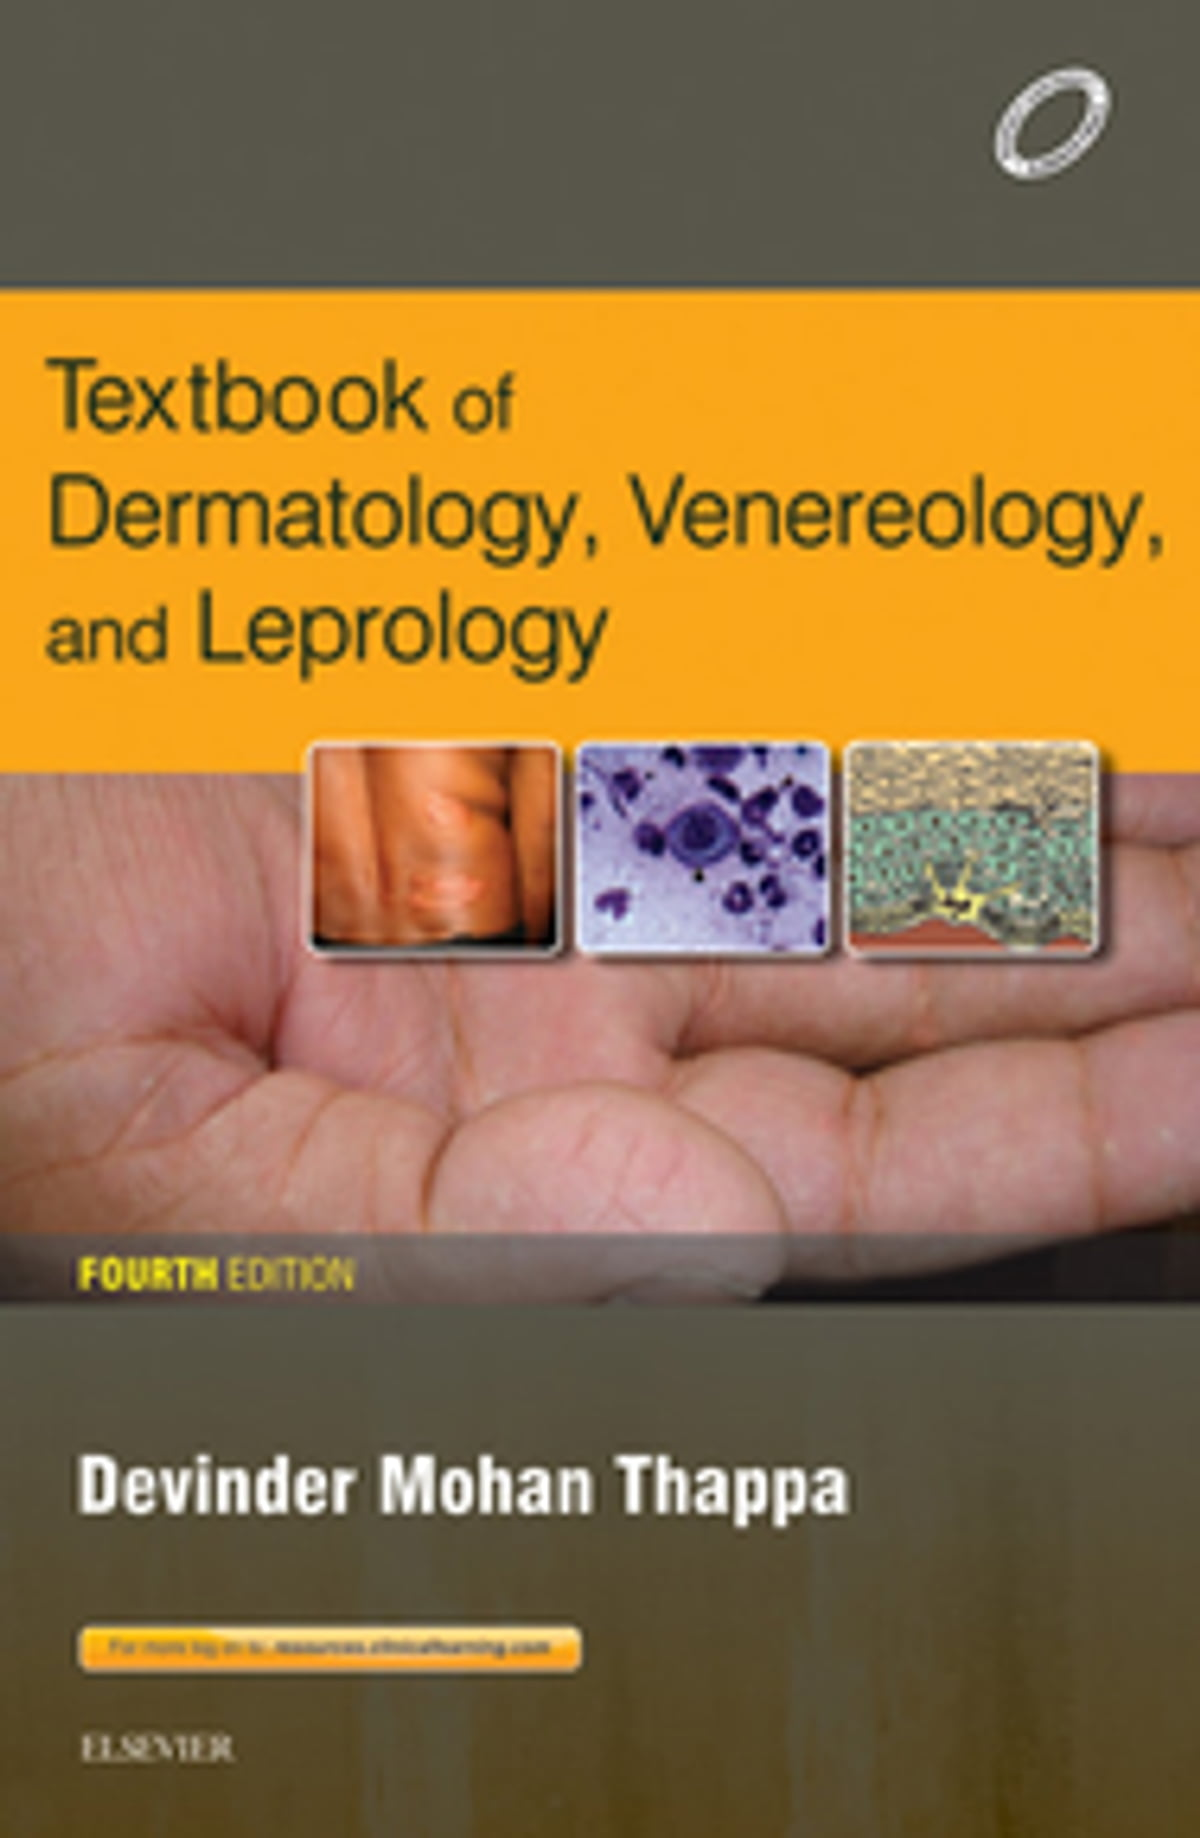 textbook of dermatology venereology and leprology pdf free download